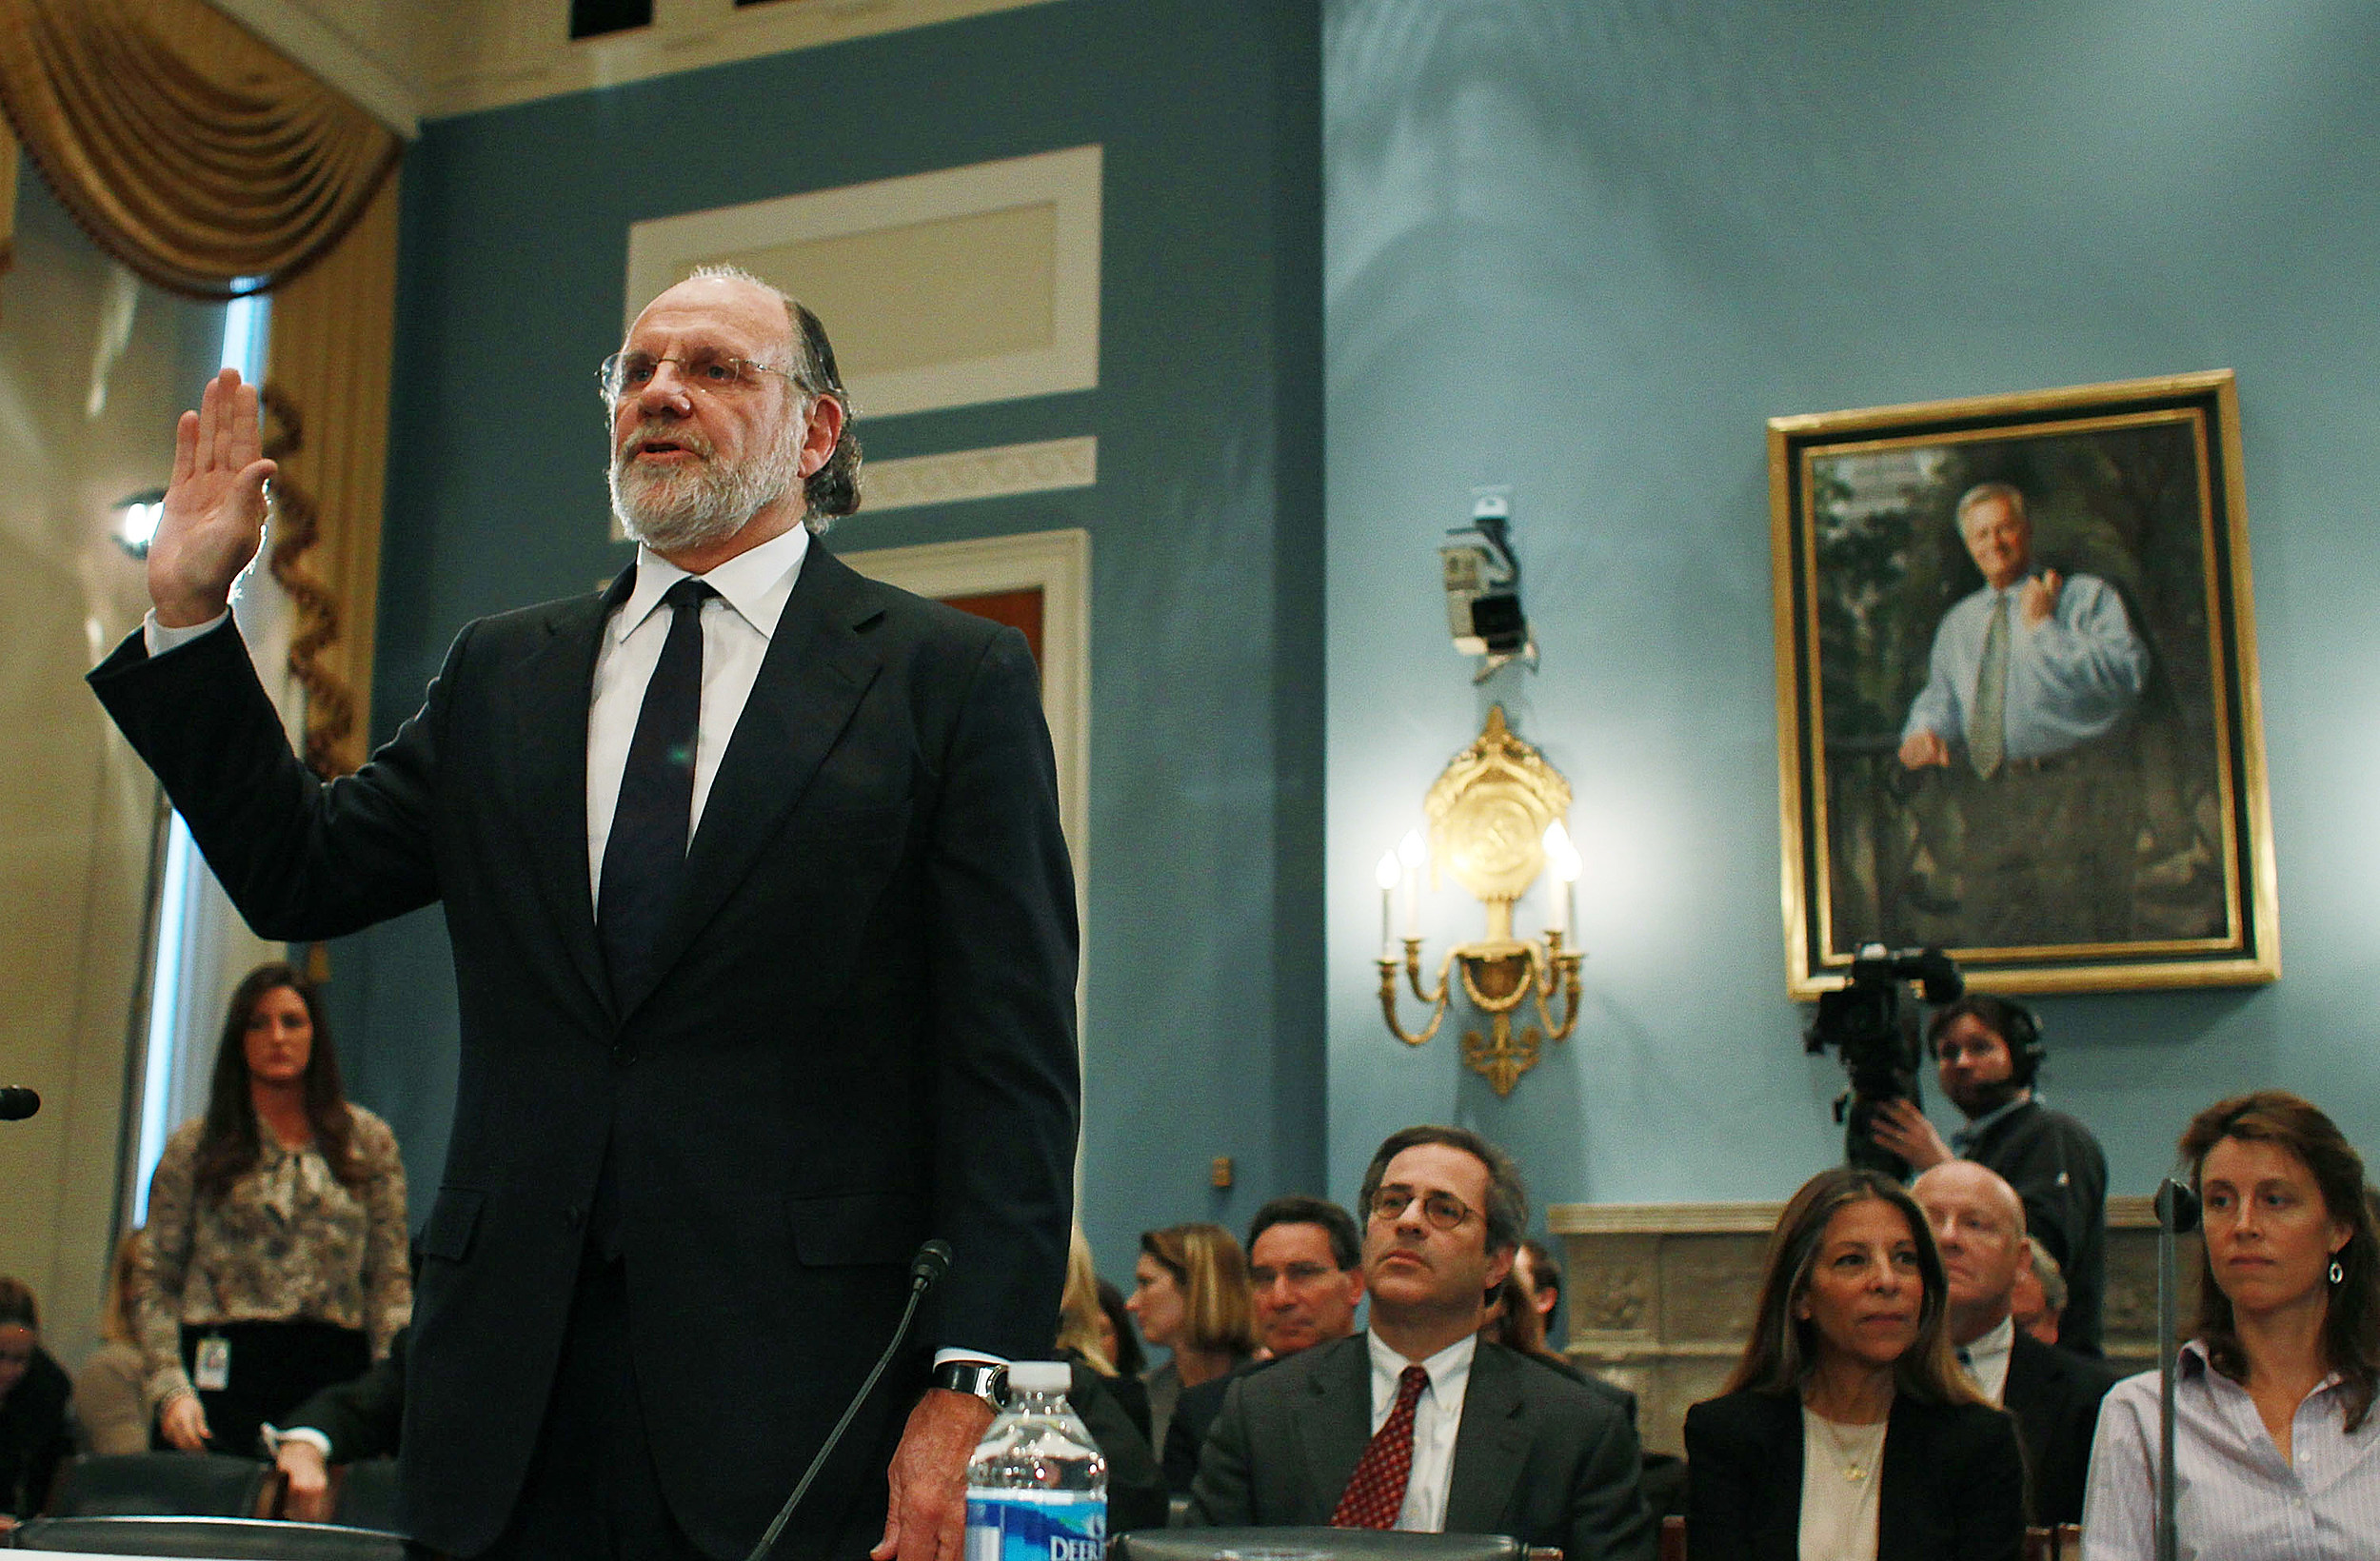 corzine pleading the 5th